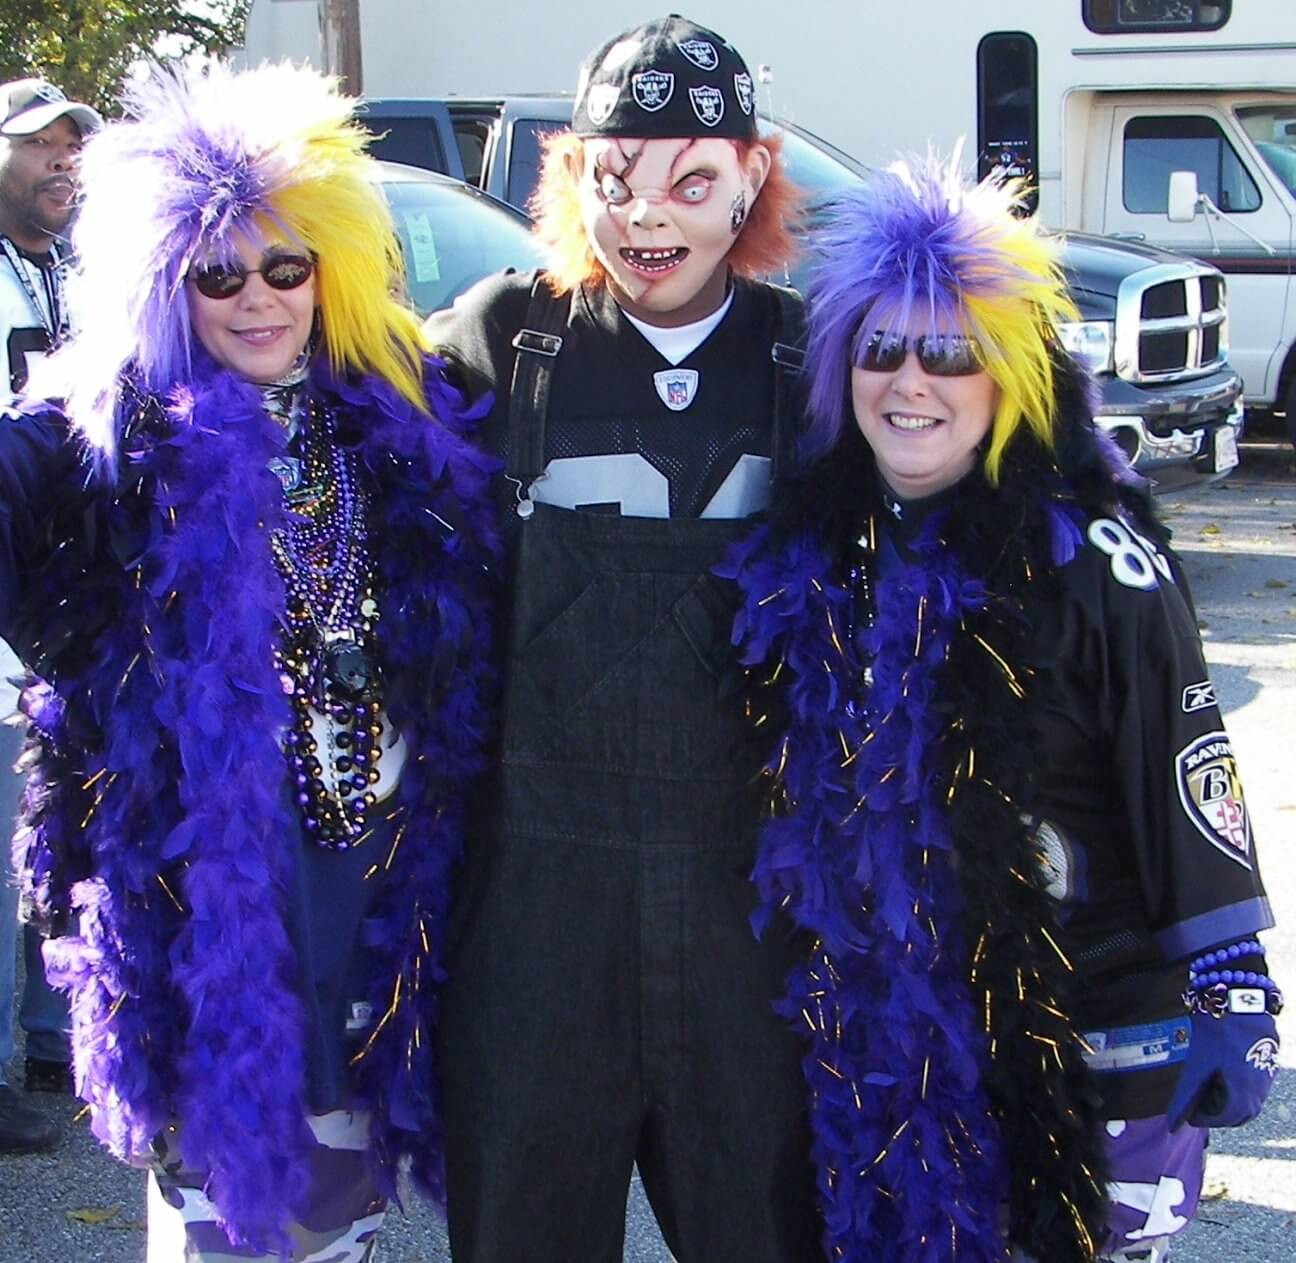 Oakland Raiders fans in costume on game day